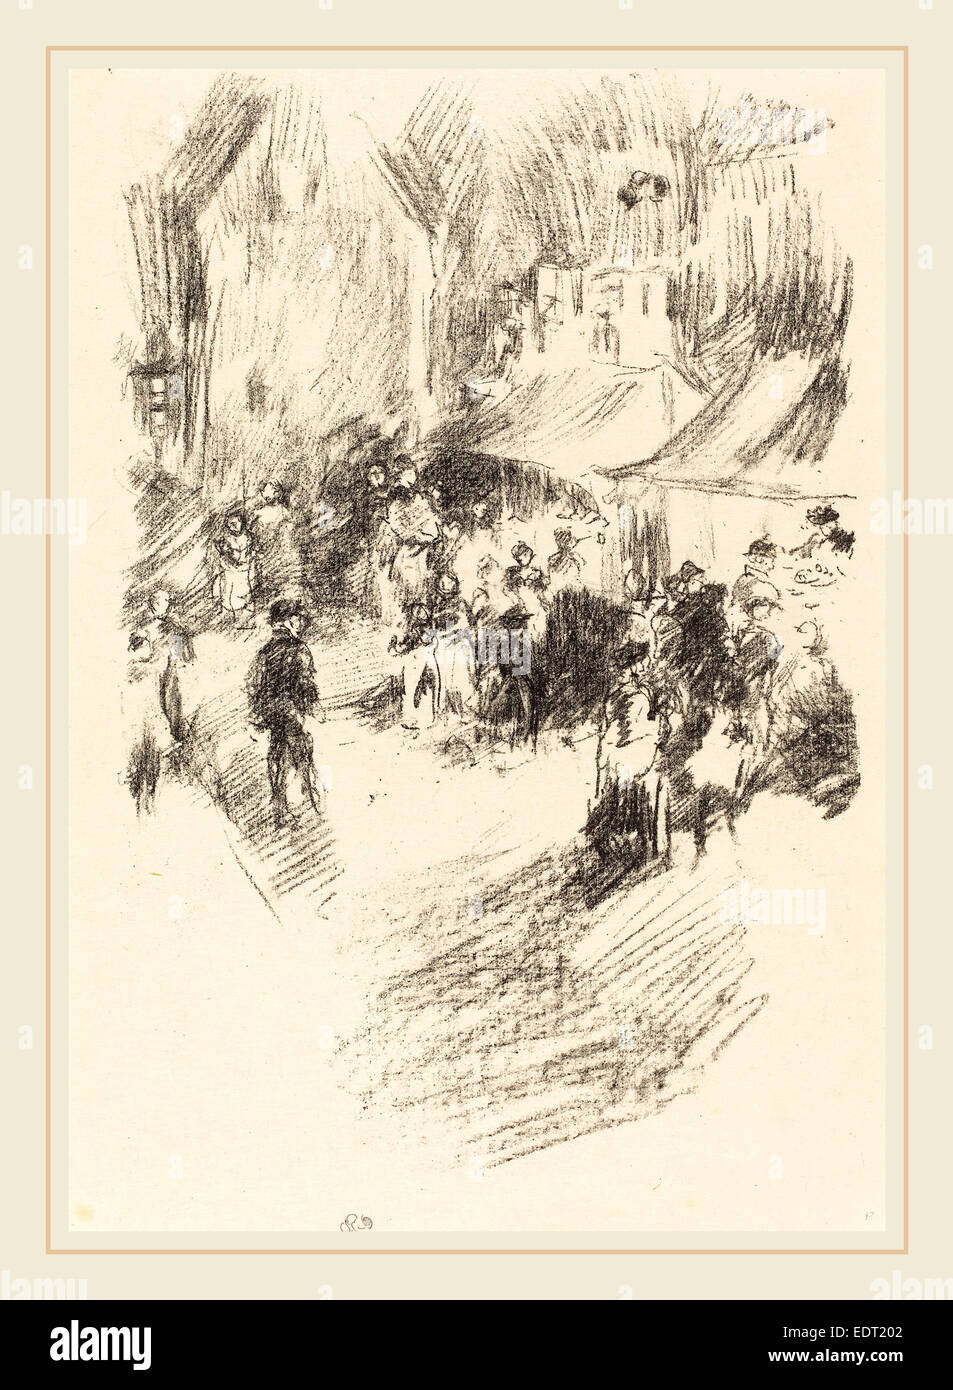 James McNeill Whistler (American, 1834-1903), The Fair, 1895, lithograph - Stock Image